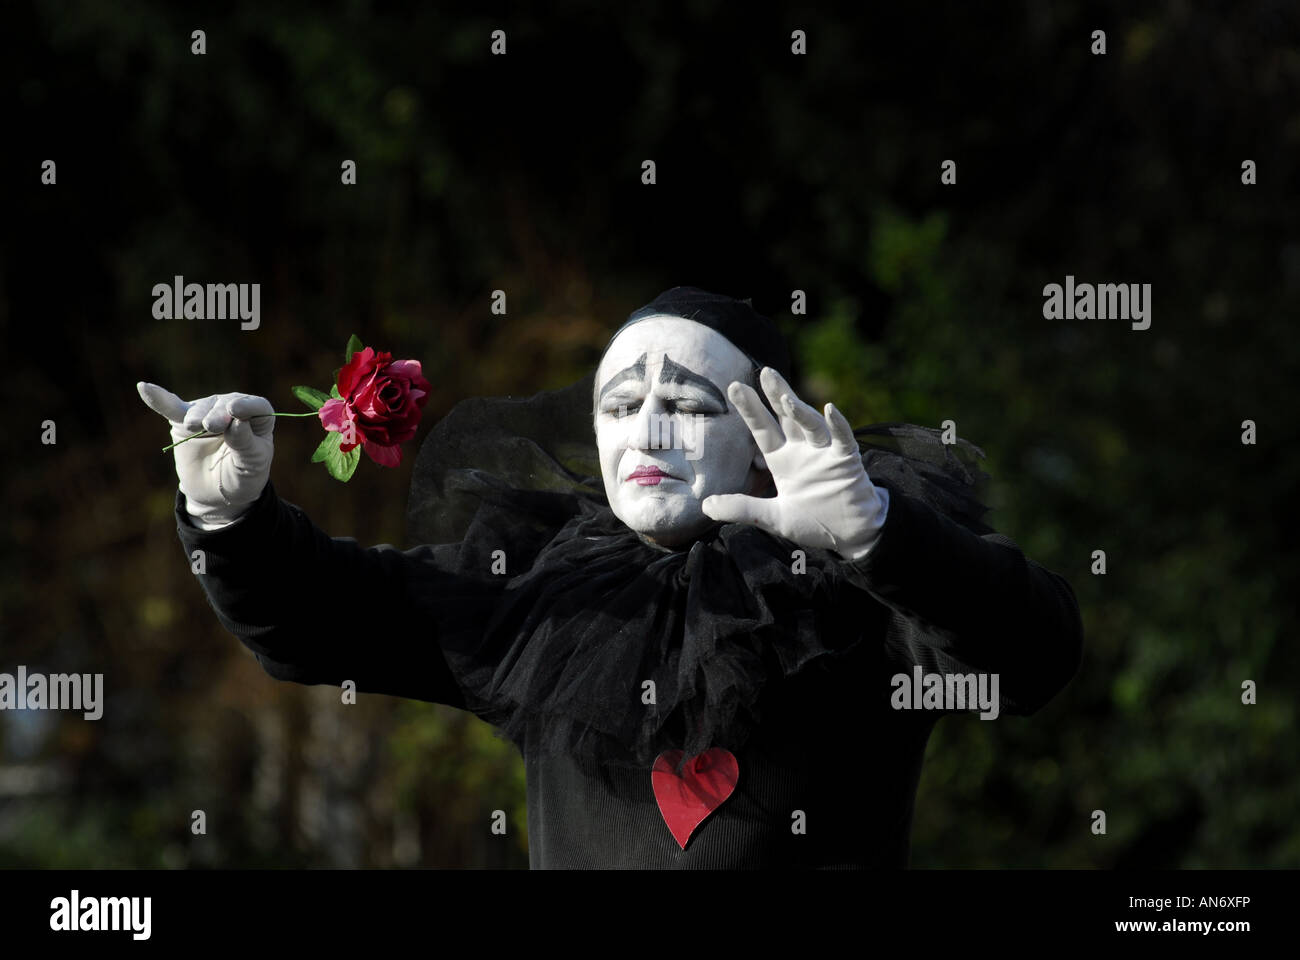 Mime artist on the steps of Sacre Coeur Cathedral Paris, France. - Stock Image